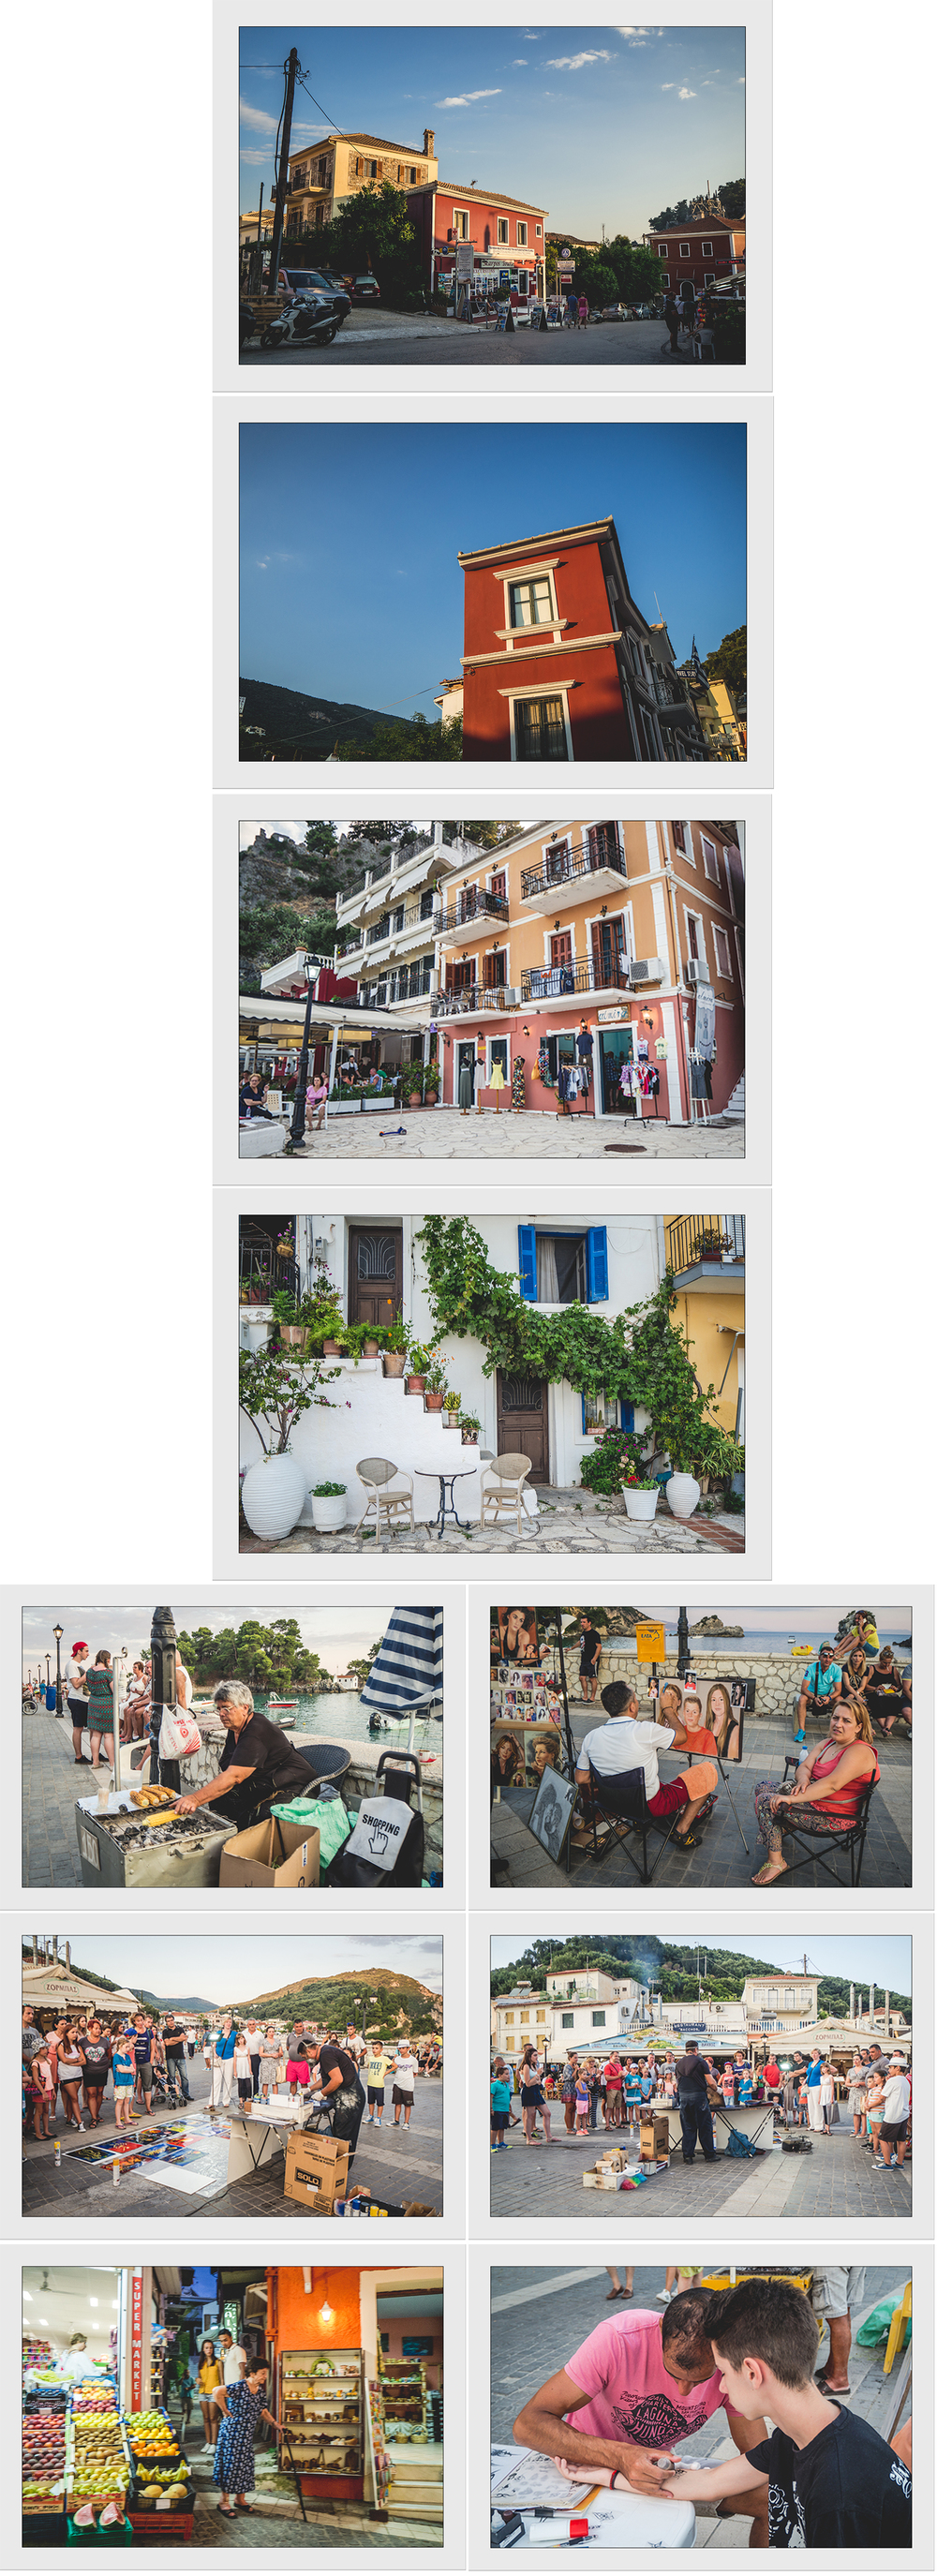 IOANNIS_ANDRIOPOULOS_PHOTOGRAPHY_PARGA 18